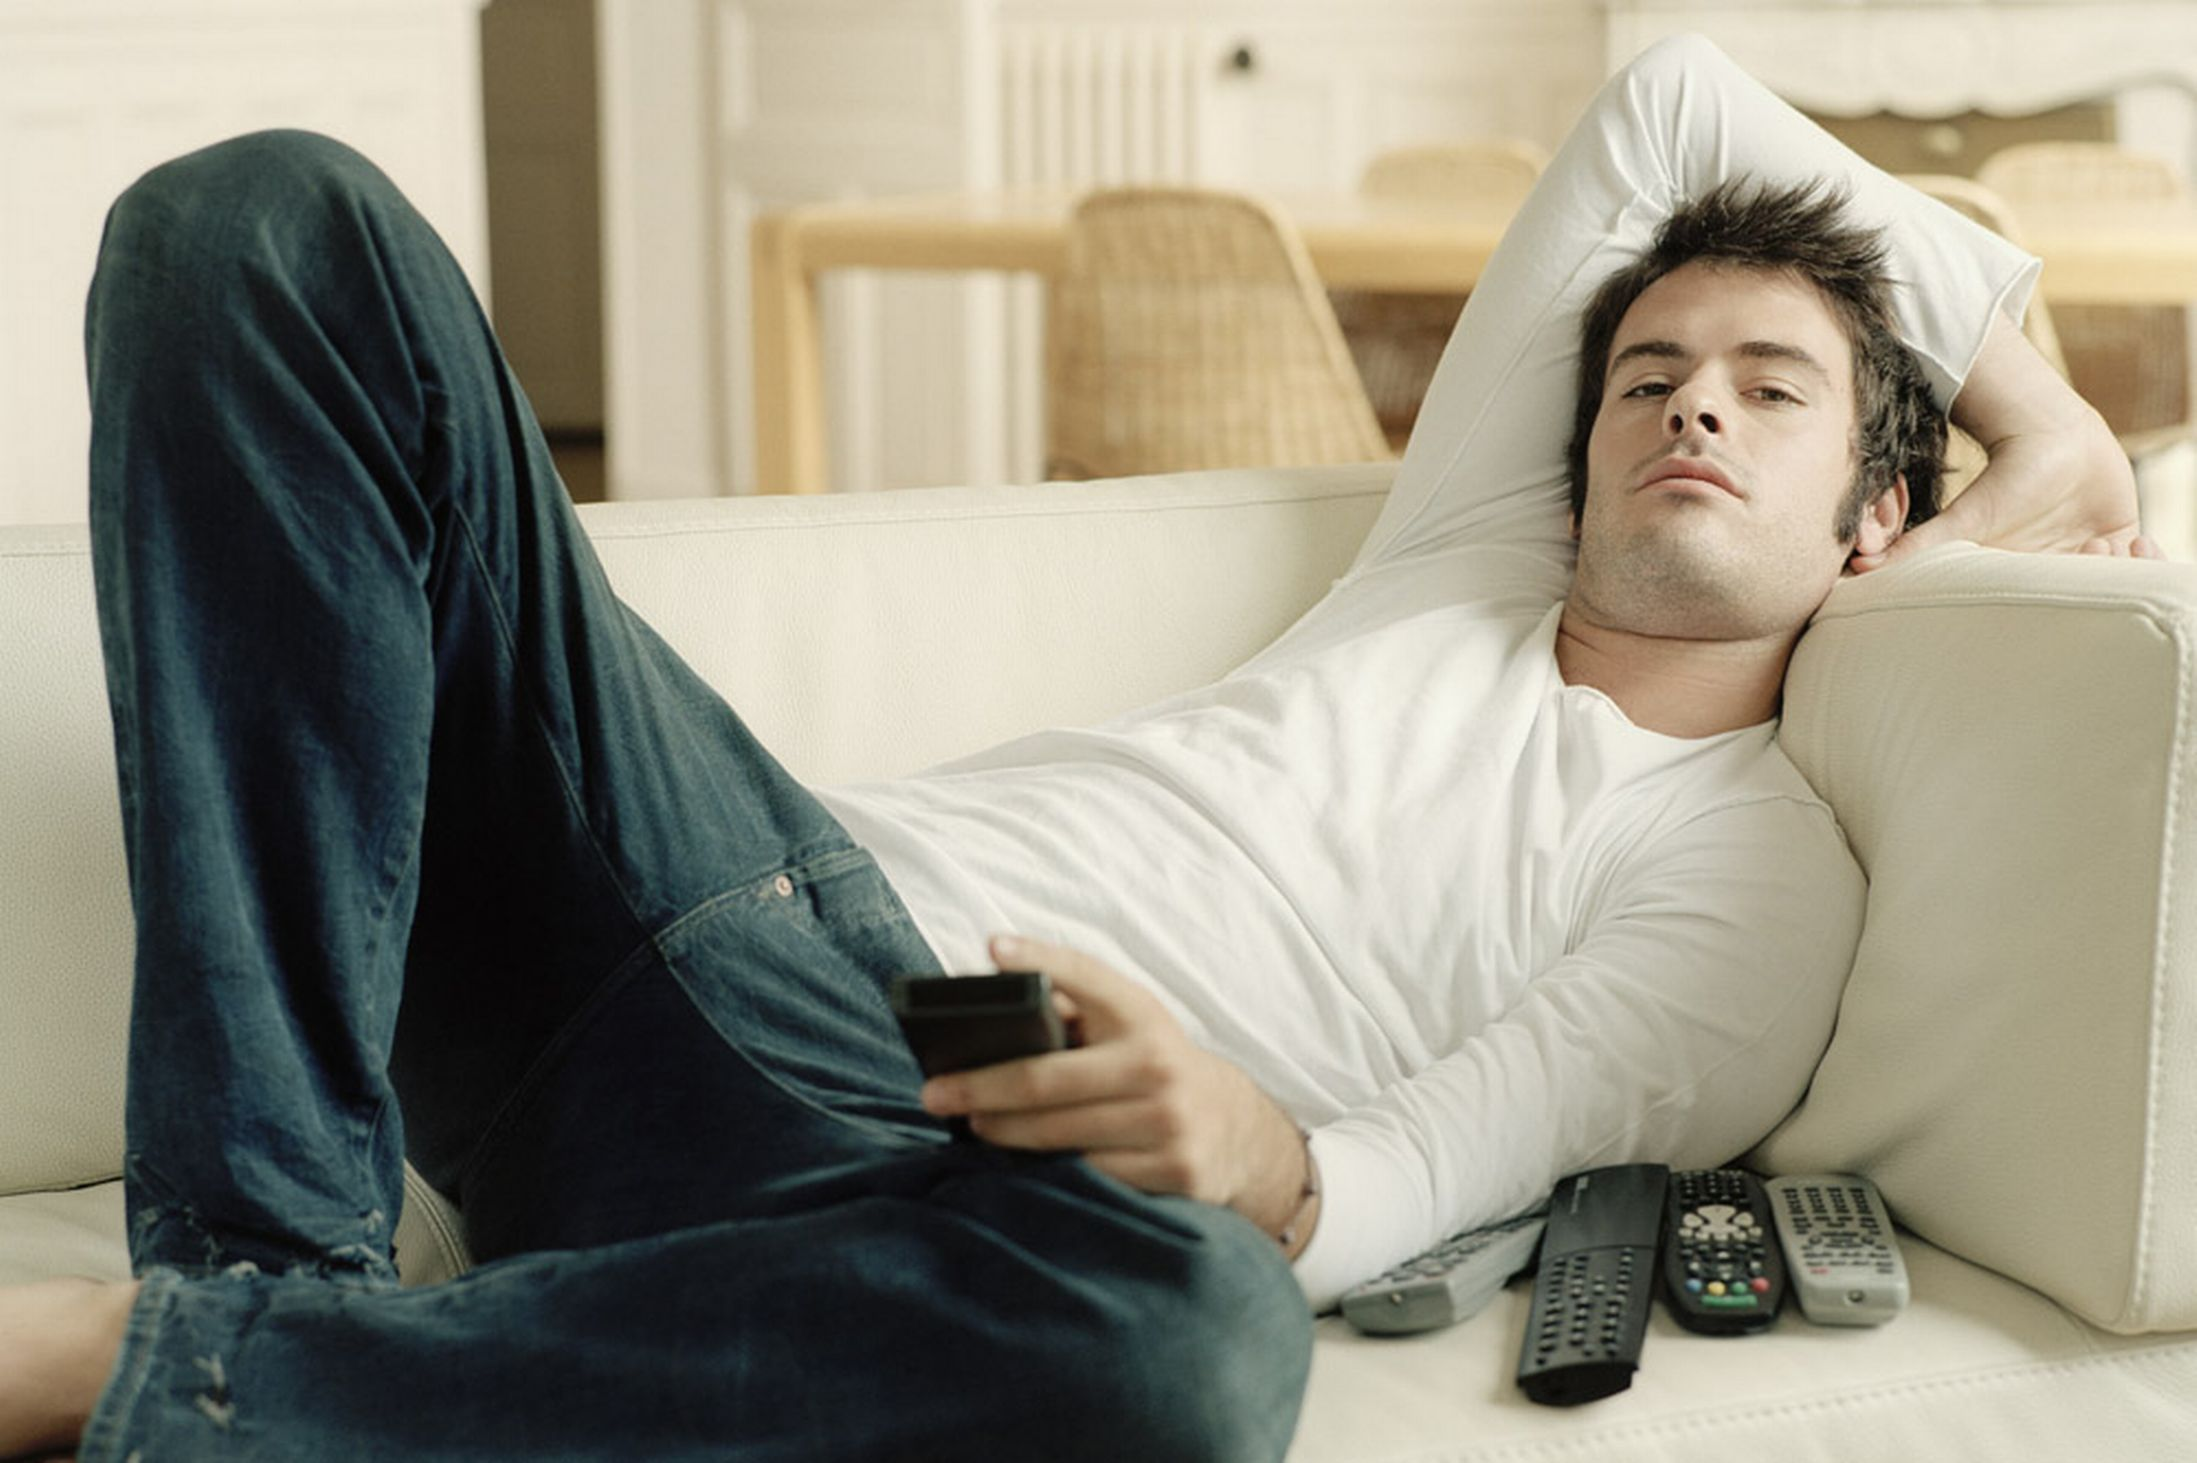 modern gadgets making people lazy We first identified whether people were active or passive users of digital technology by using a questionnaire that reflected their interactions with different internet forms, including facebook.